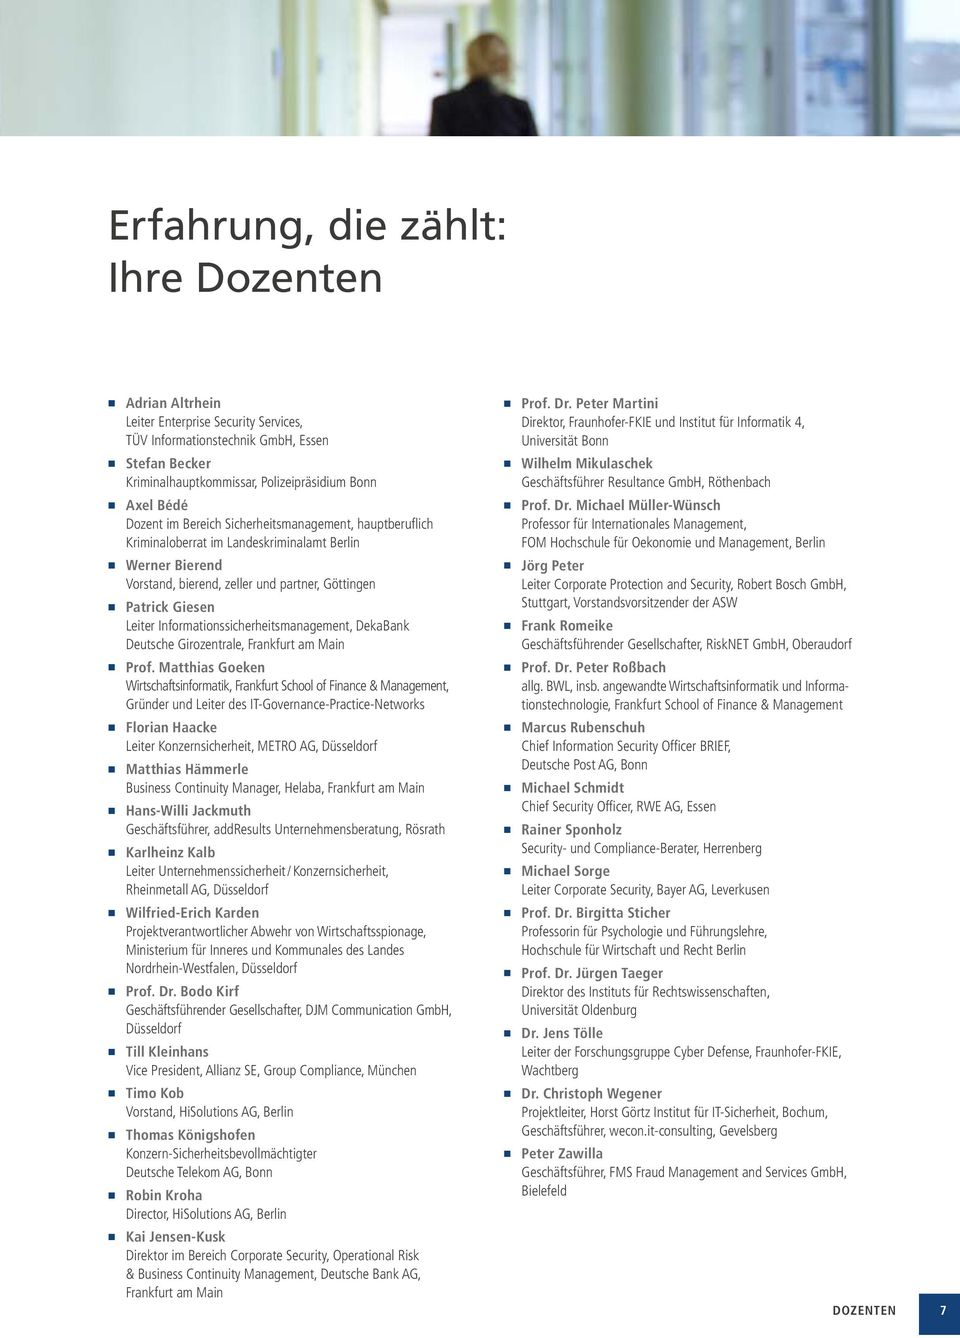 Informationssicherheitsmanagement, DekaBank Deutsche Girozentrale, Frankfurt am Main Prof.